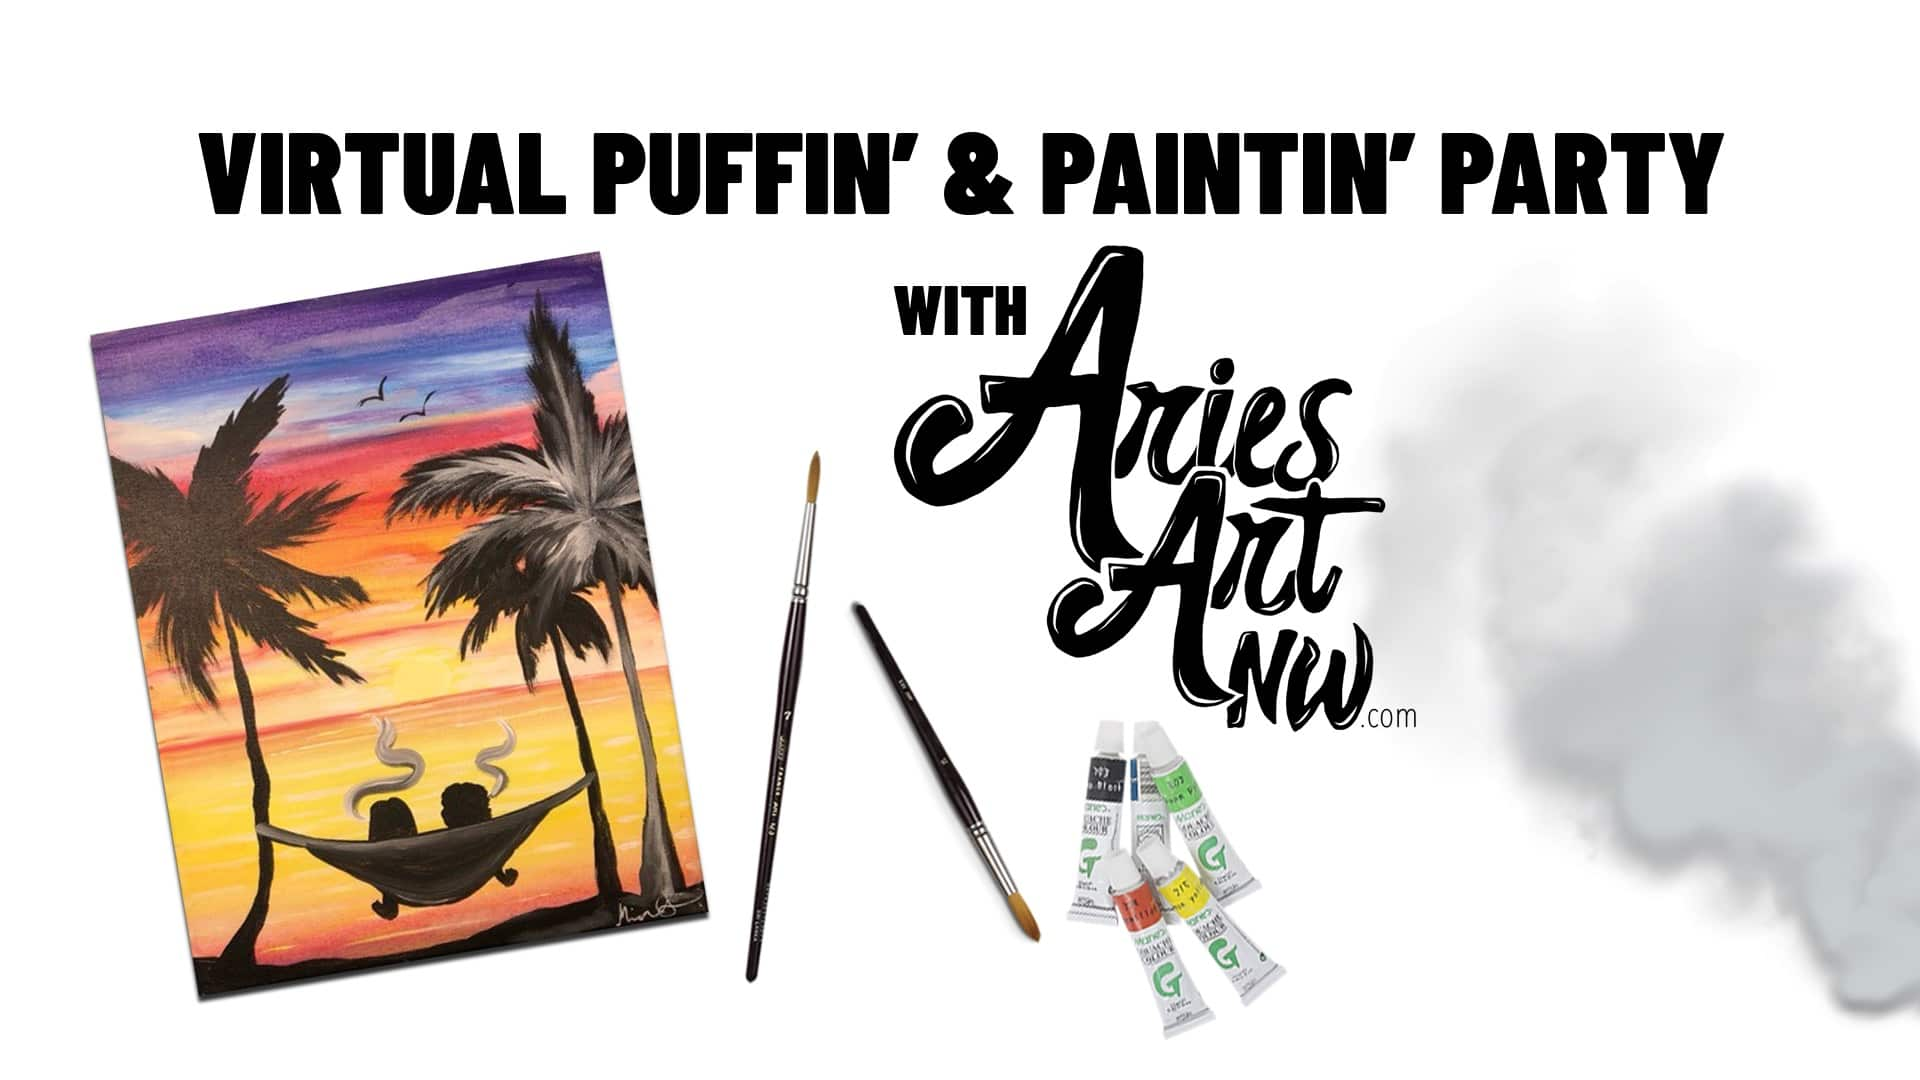 Virtual Puffin' & Paintin' Party